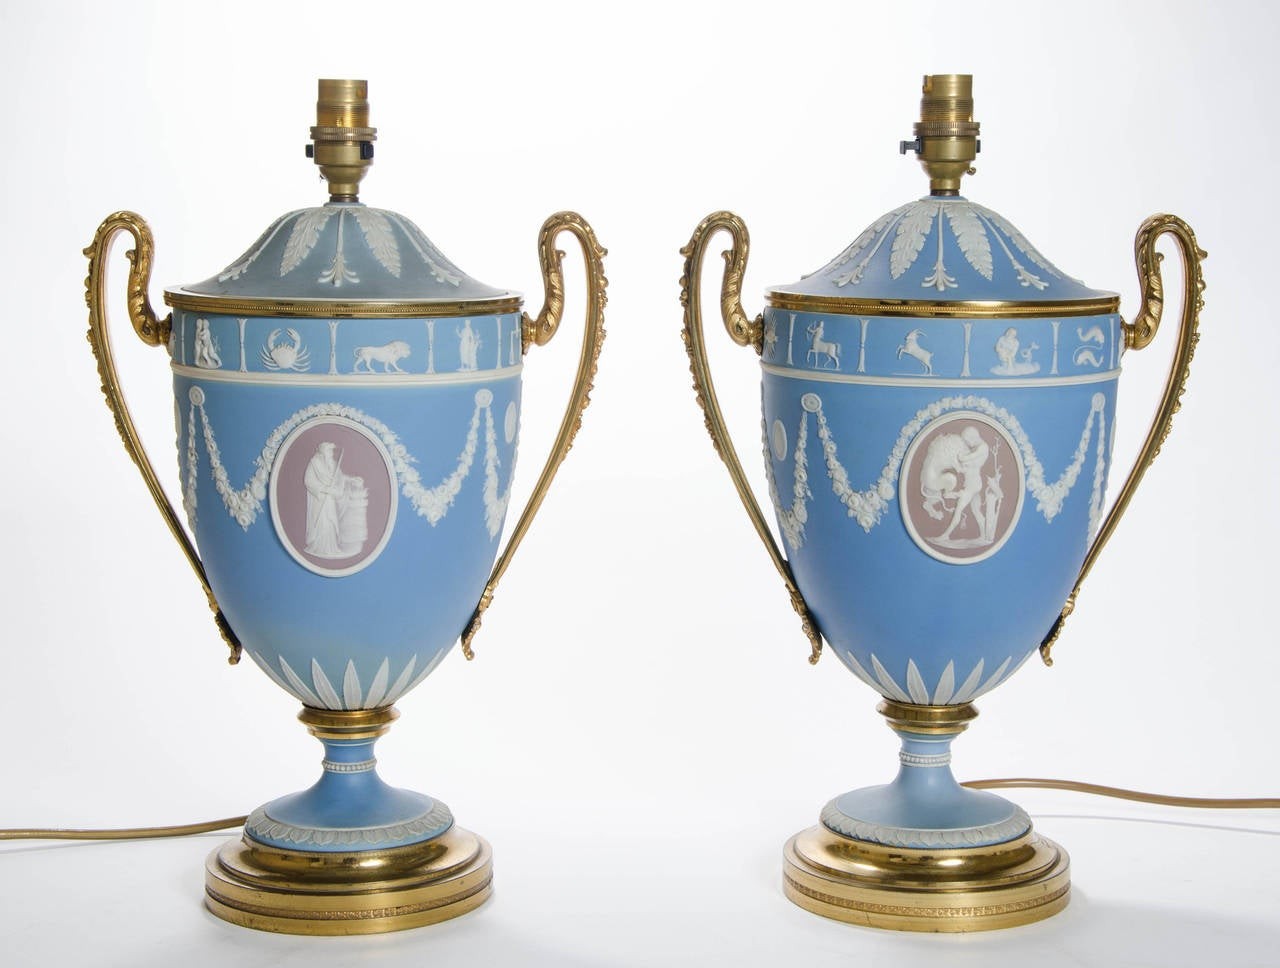 A Pair of Wedgwood Vases as Lamps with ormolu handles and bases 2